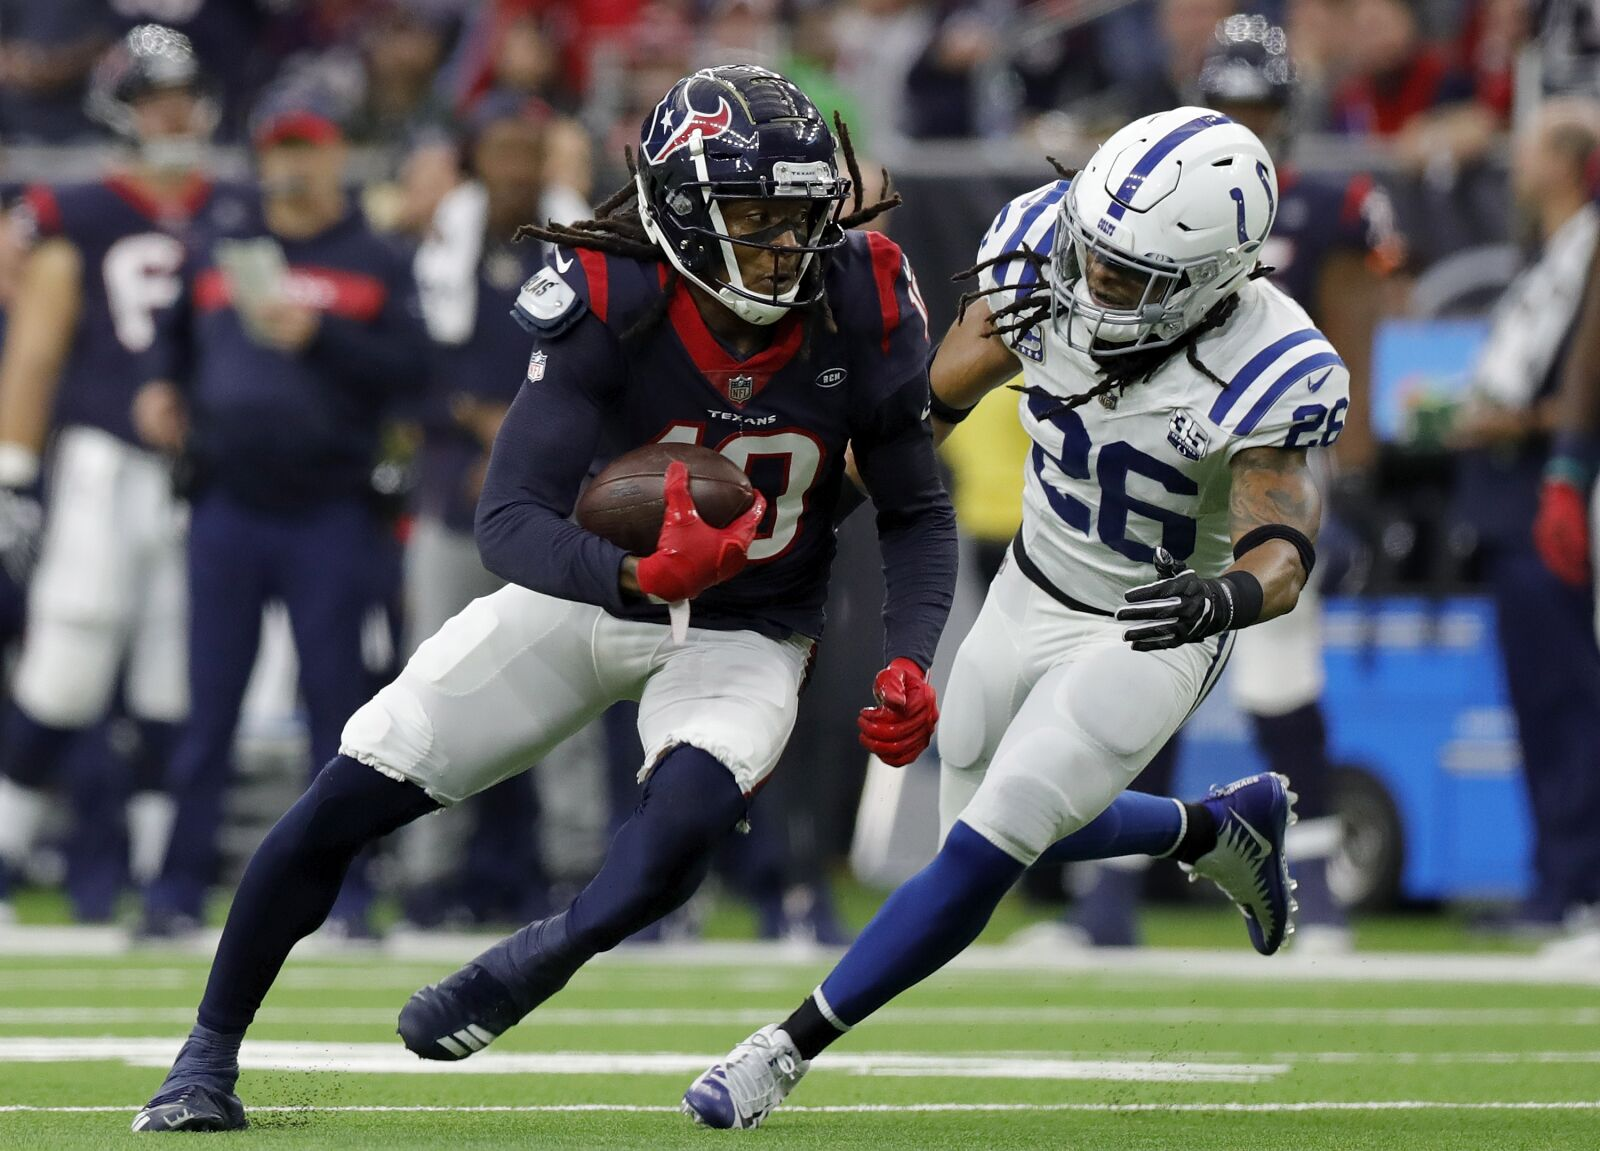 Houston Texans fighting for AFC South supremacy in Week 7